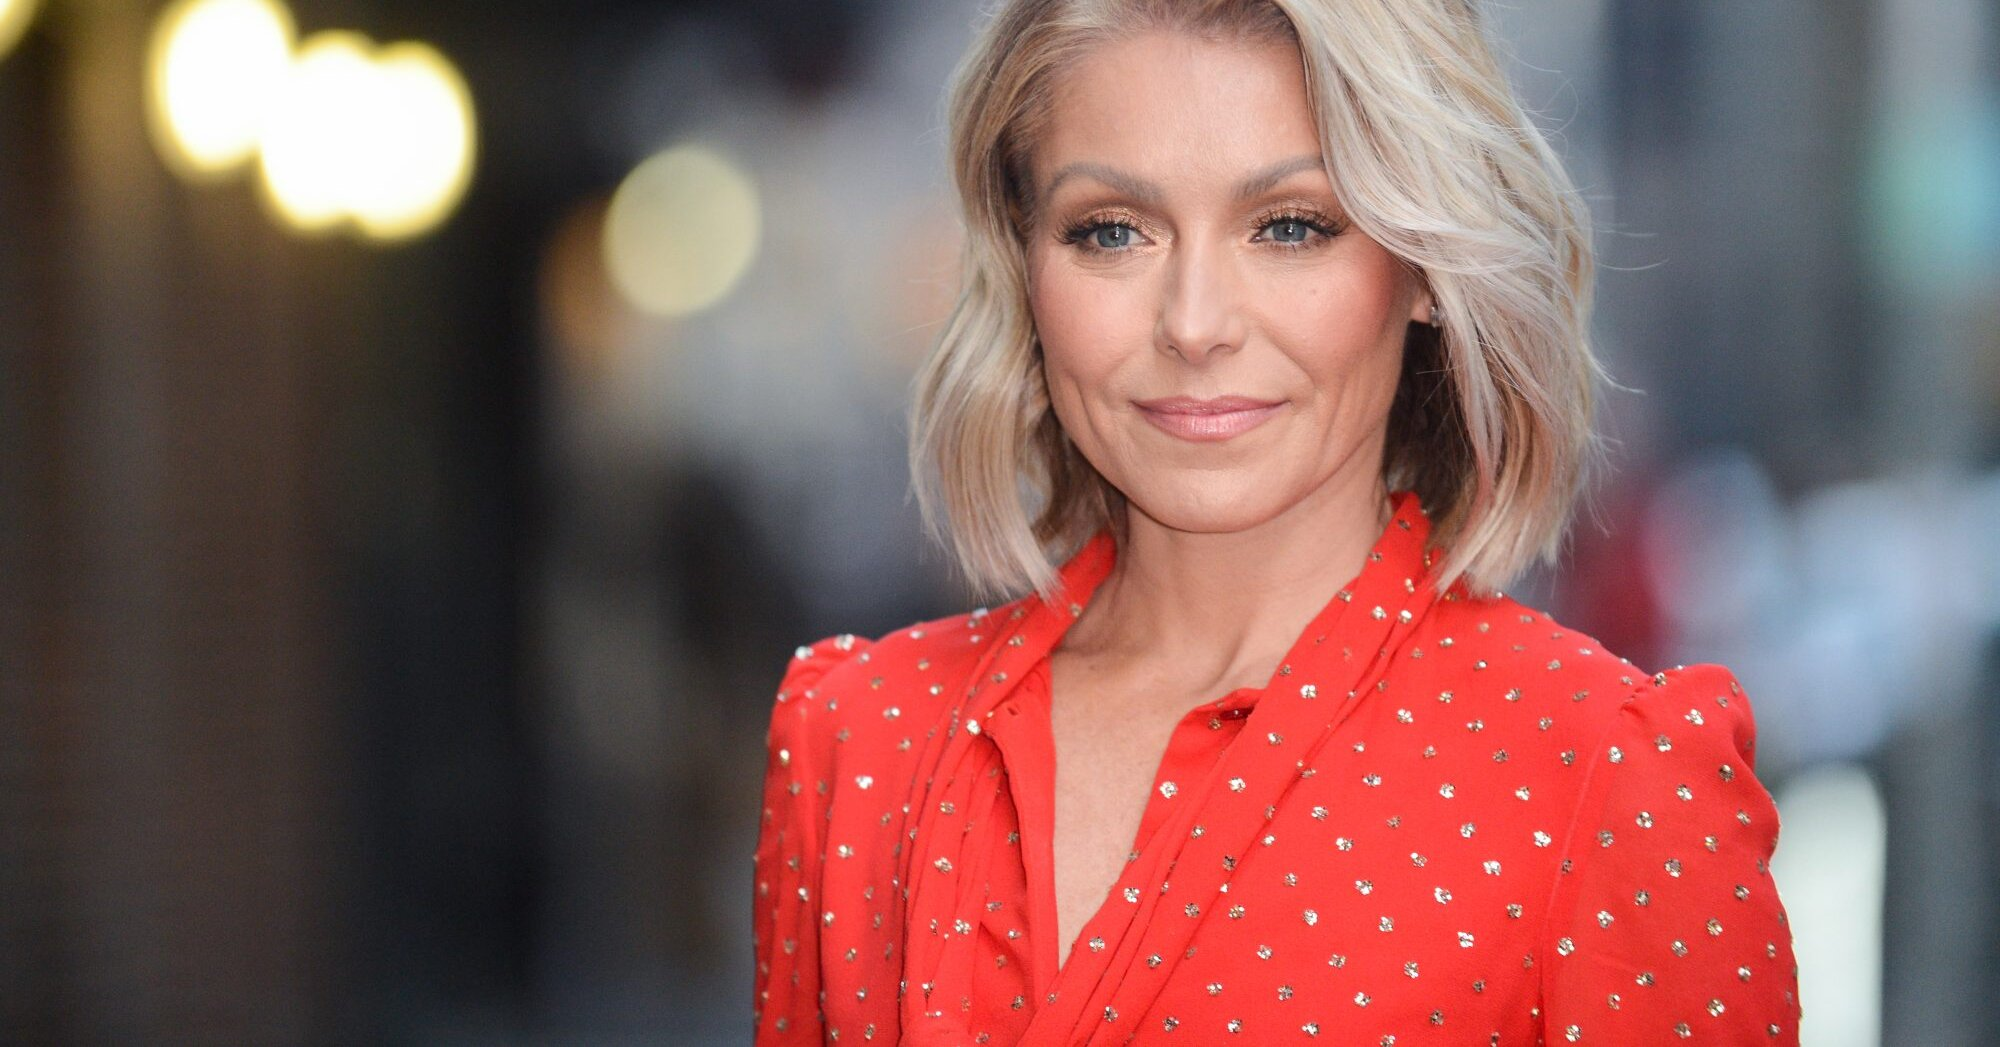 """A Viewer Called Out Kelly Ripa for Her """"Lack of Personal Grooming"""""""